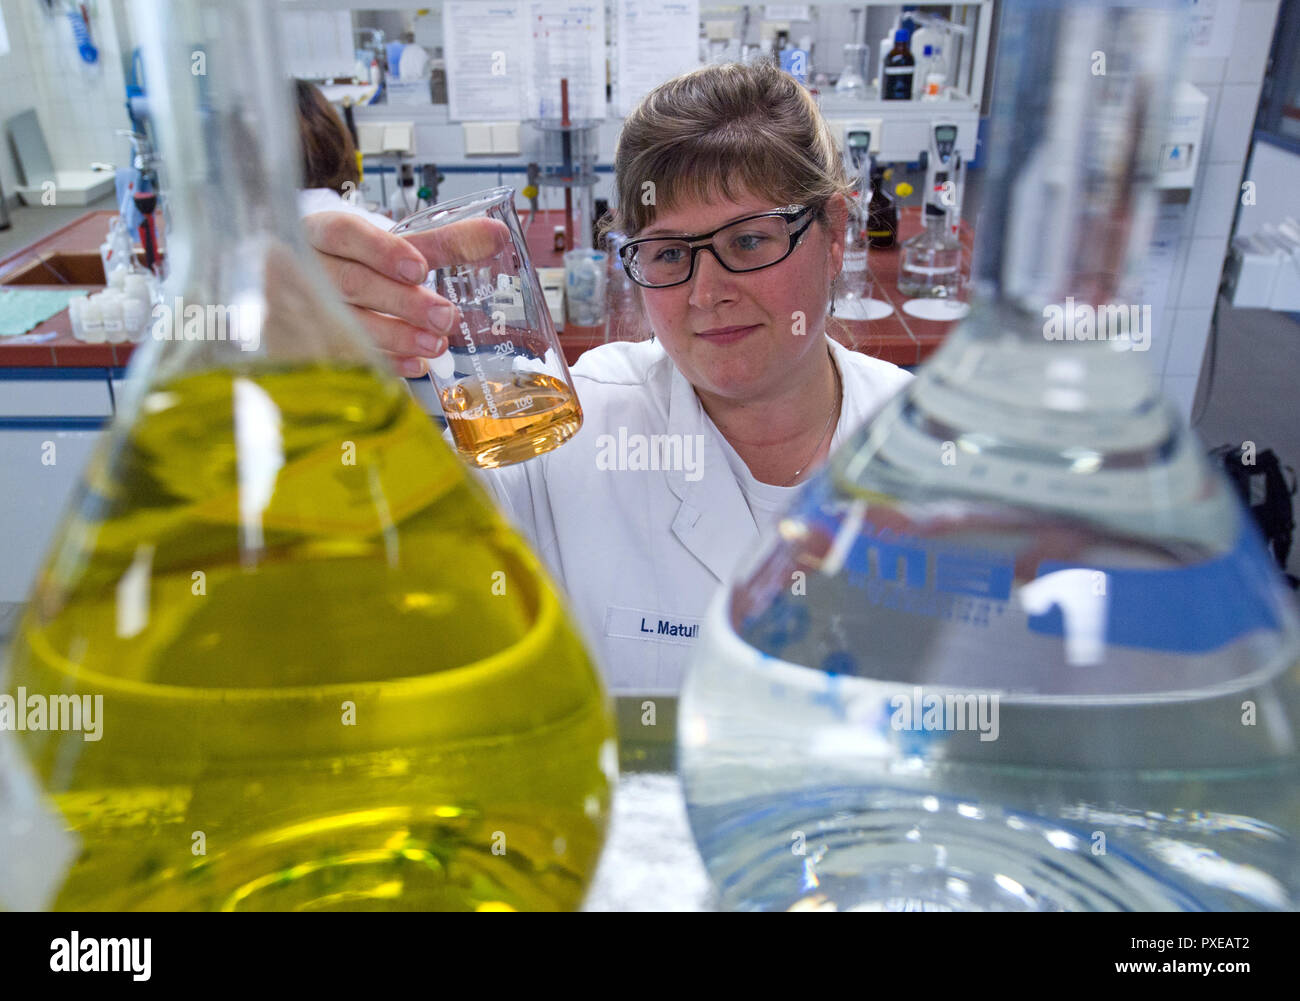 Bitterfeld Wolfen, Germany. 22nd Oct, 2018. Laboratory technician Lysann Matull determines the caustic carbonate content in brine in the laboratory of the chemical company Nouryon in the chemical park. The former AkzoNobel Specialty Chemicals now operates as an independent company under the name Nouryon. The division was taken over by the US Carlyle Group. In Bitterfeld, the company operates a chlor-alkali electrolysis plant. Credit: Hendrik Schmidt/dpa-Zentralbild/dpa - ACHTUNG: Nur zur redaktionellen Verwendung im Zusammenhang mit der Berichterstattung über Nouryon/dpa/Alamy Live News Stock Photo